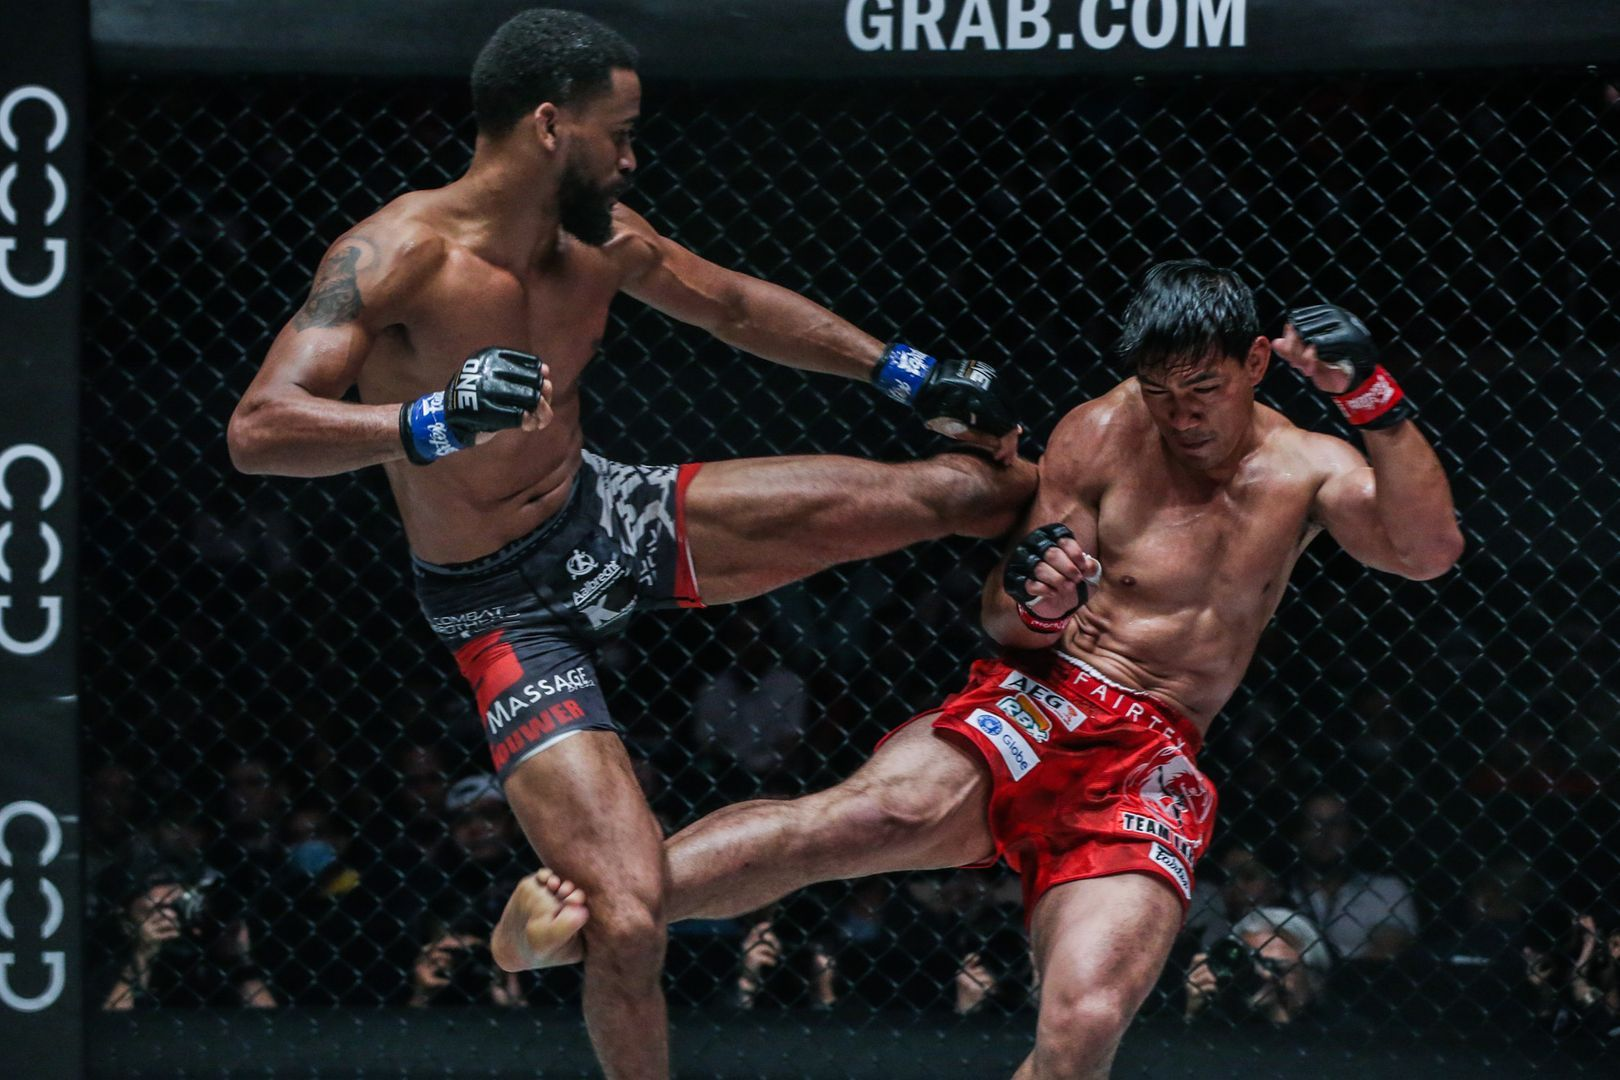 Surging Dutchman Pieter Buist competes against Filipino icon Eduard Folayang